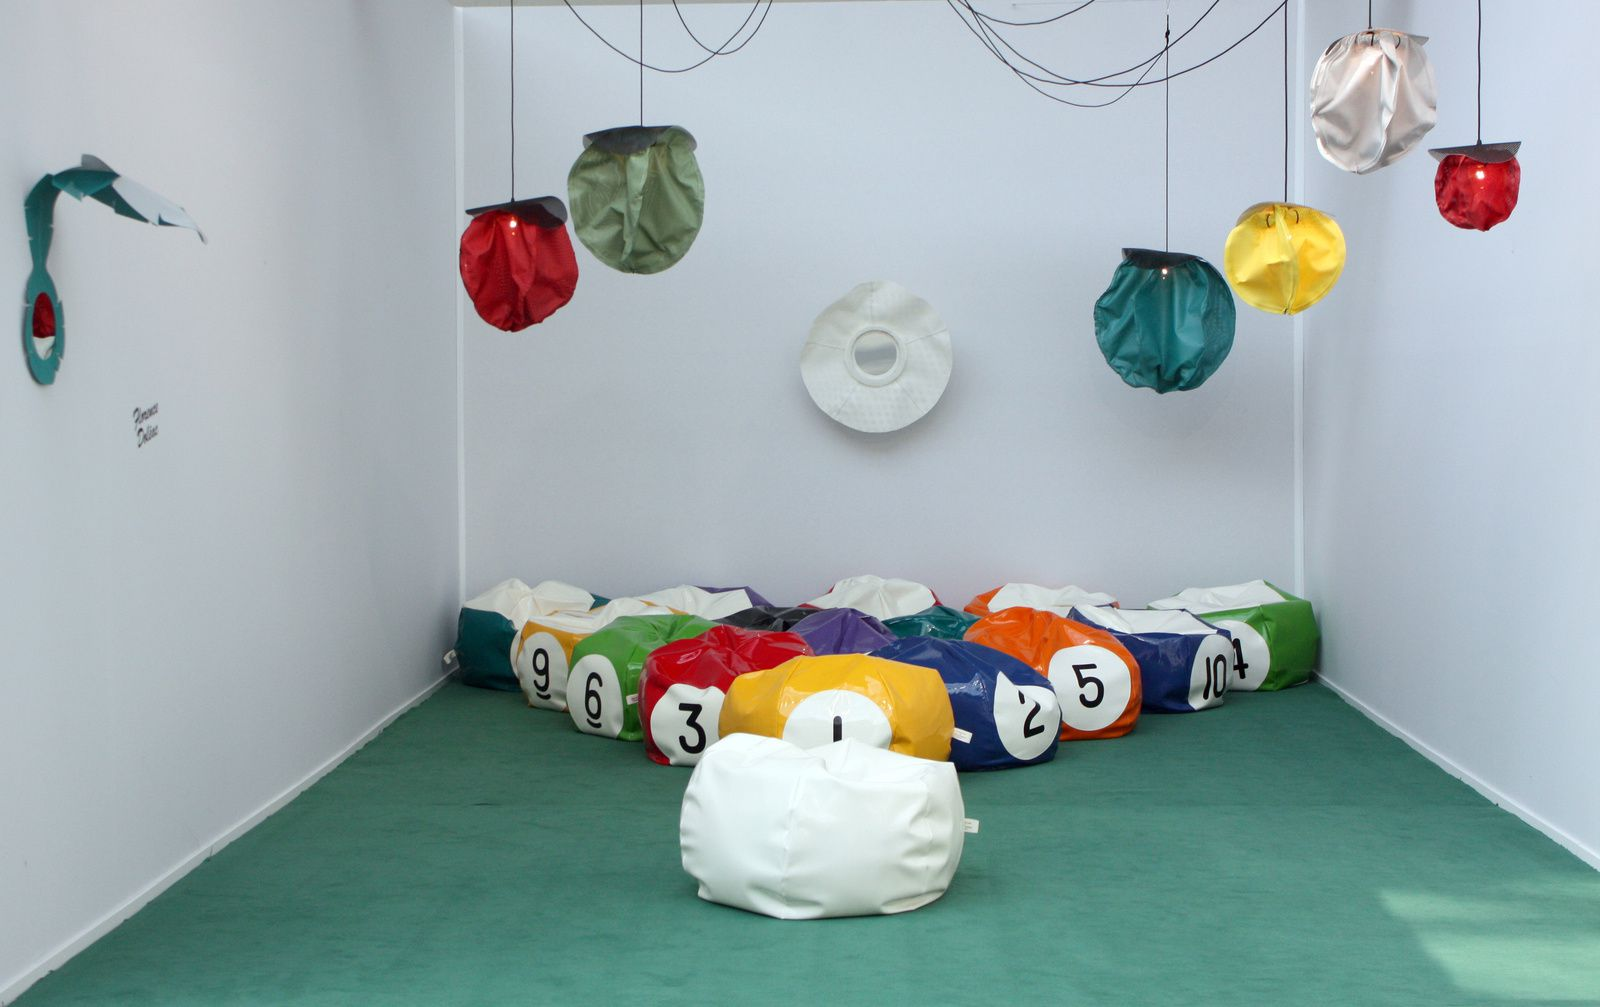 Foire d'Art Contemporain: ART PARIS ART FAIR 2014